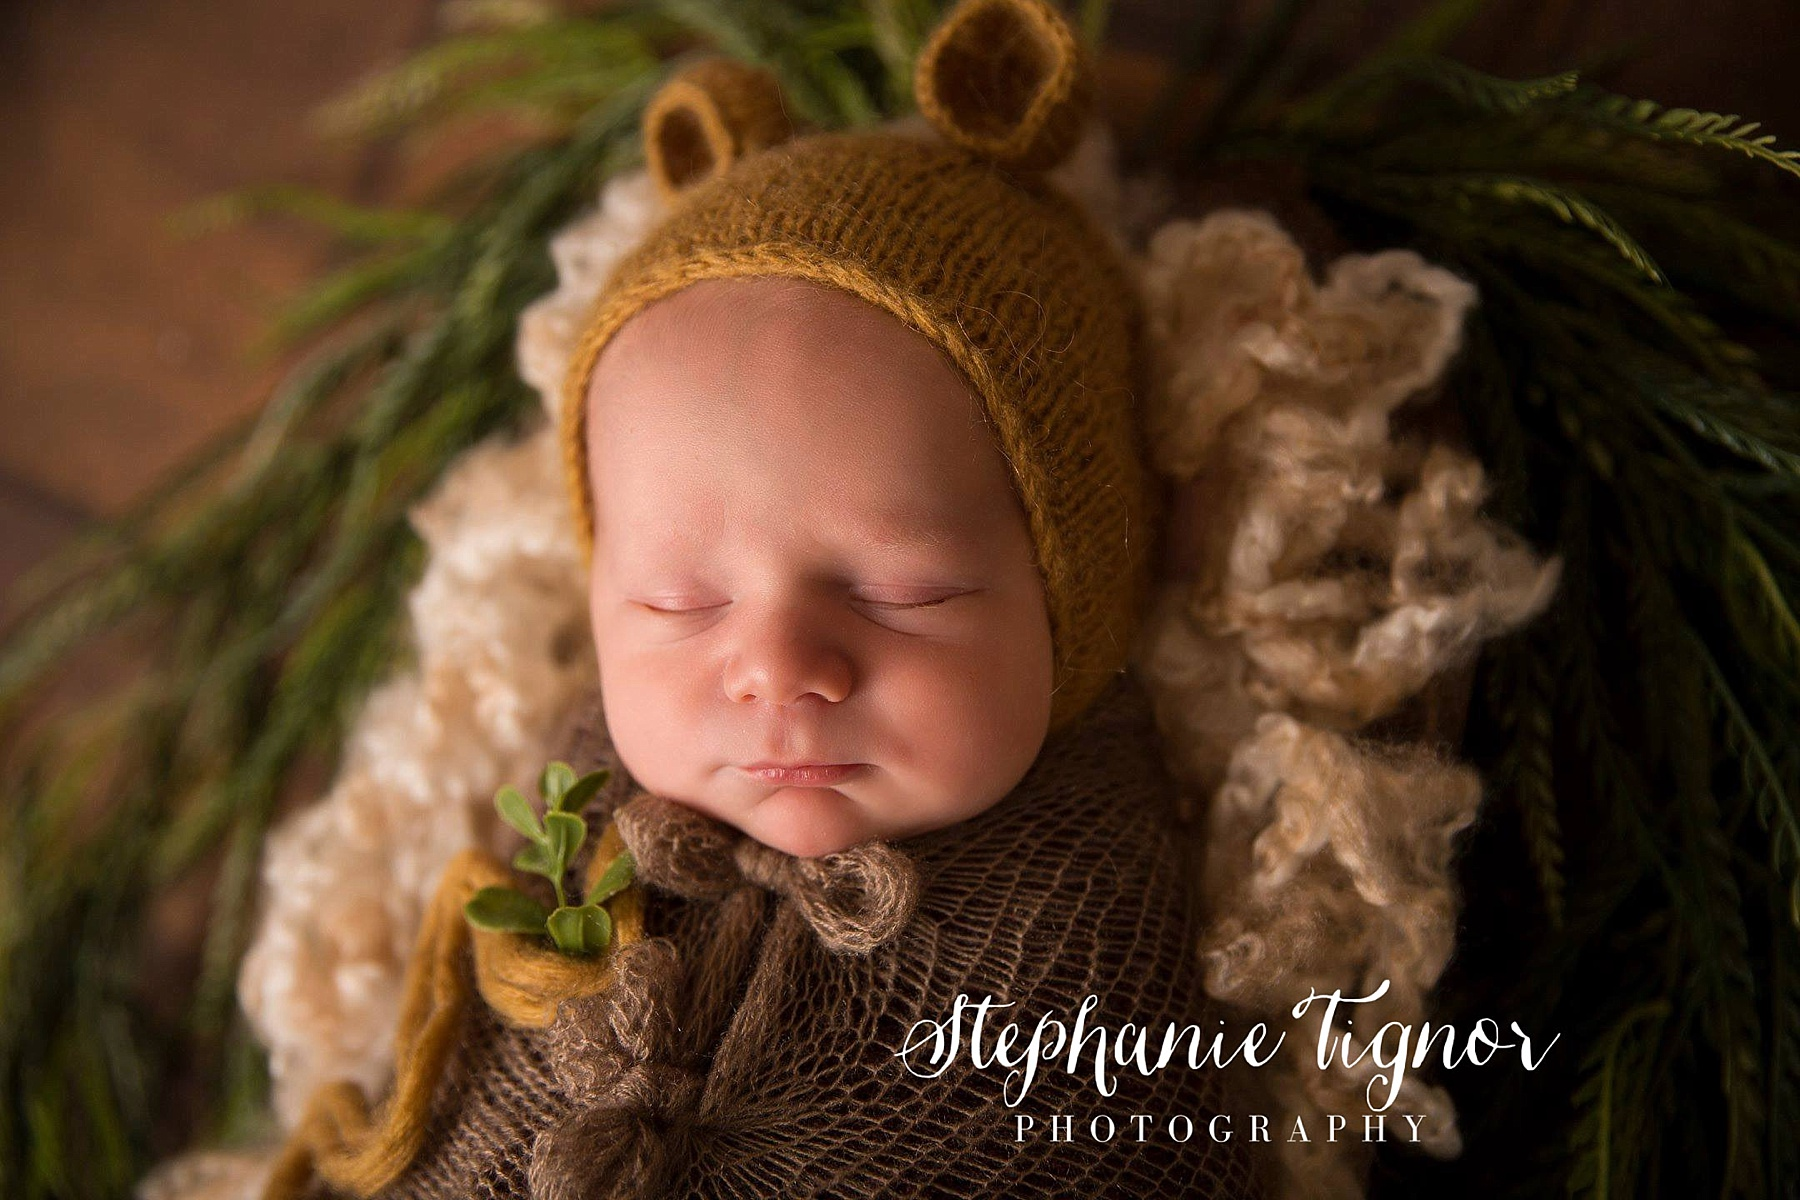 Stephanie Tignor Photography | Fredericksburg VA Newborn Photographer | Warrenton VA Newborn Photographer | Stafford VA Newborn Photographer | Newborn Photographer, spring inspired newborn portraits, spring portraits, baby portraits